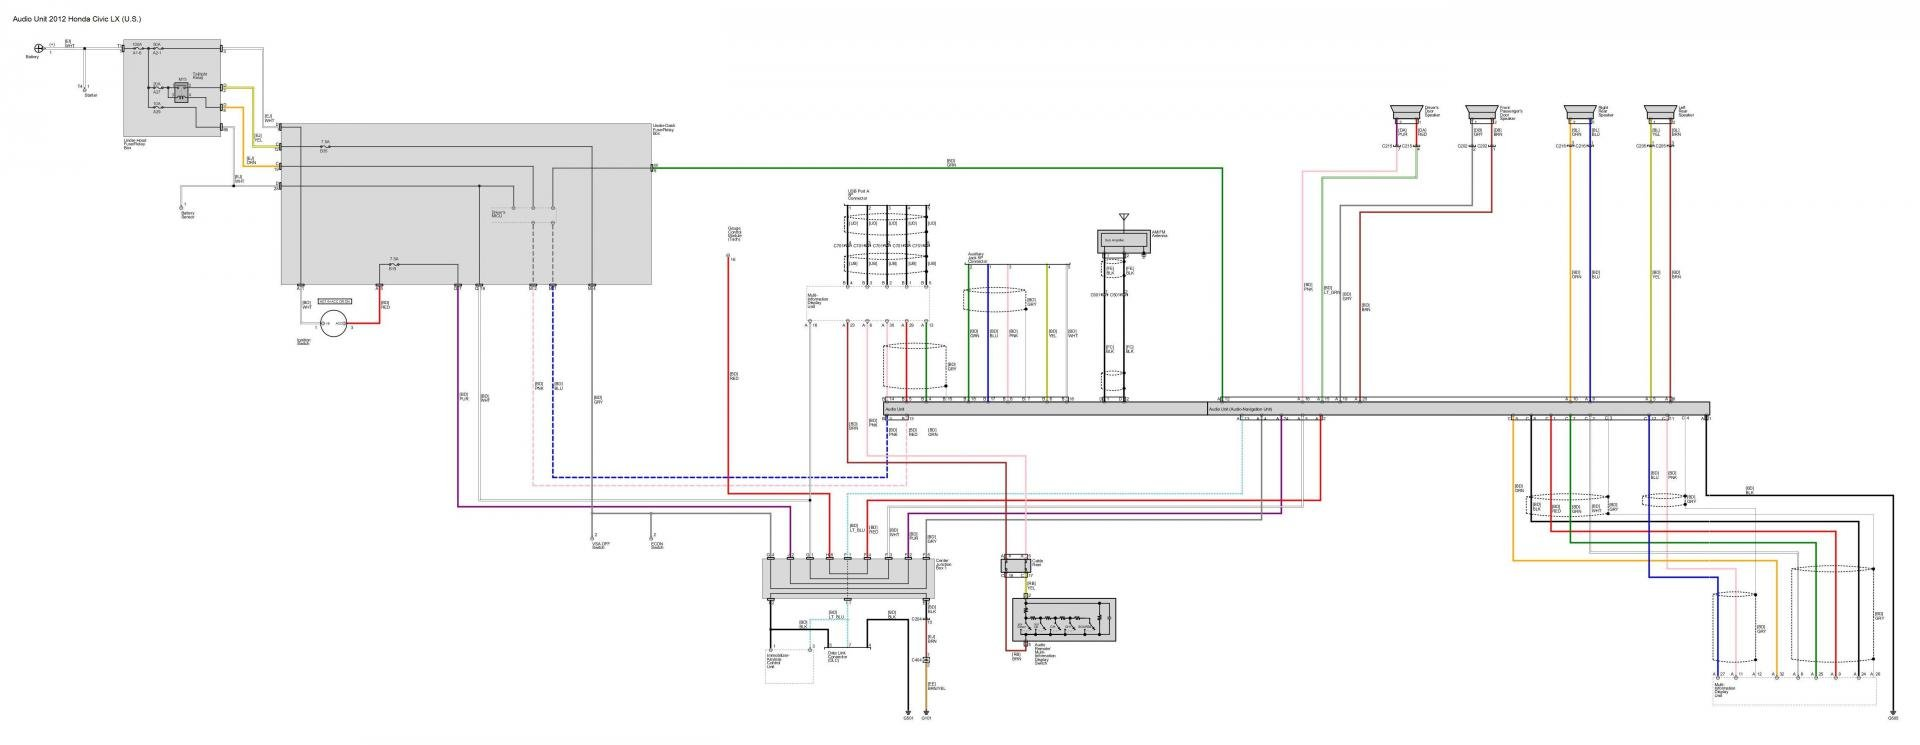 audio wiring diagrams post \u0027em if you got \u0027em 2004 honda civic radio wiring diagram 2012 honda civic wiring wiring library